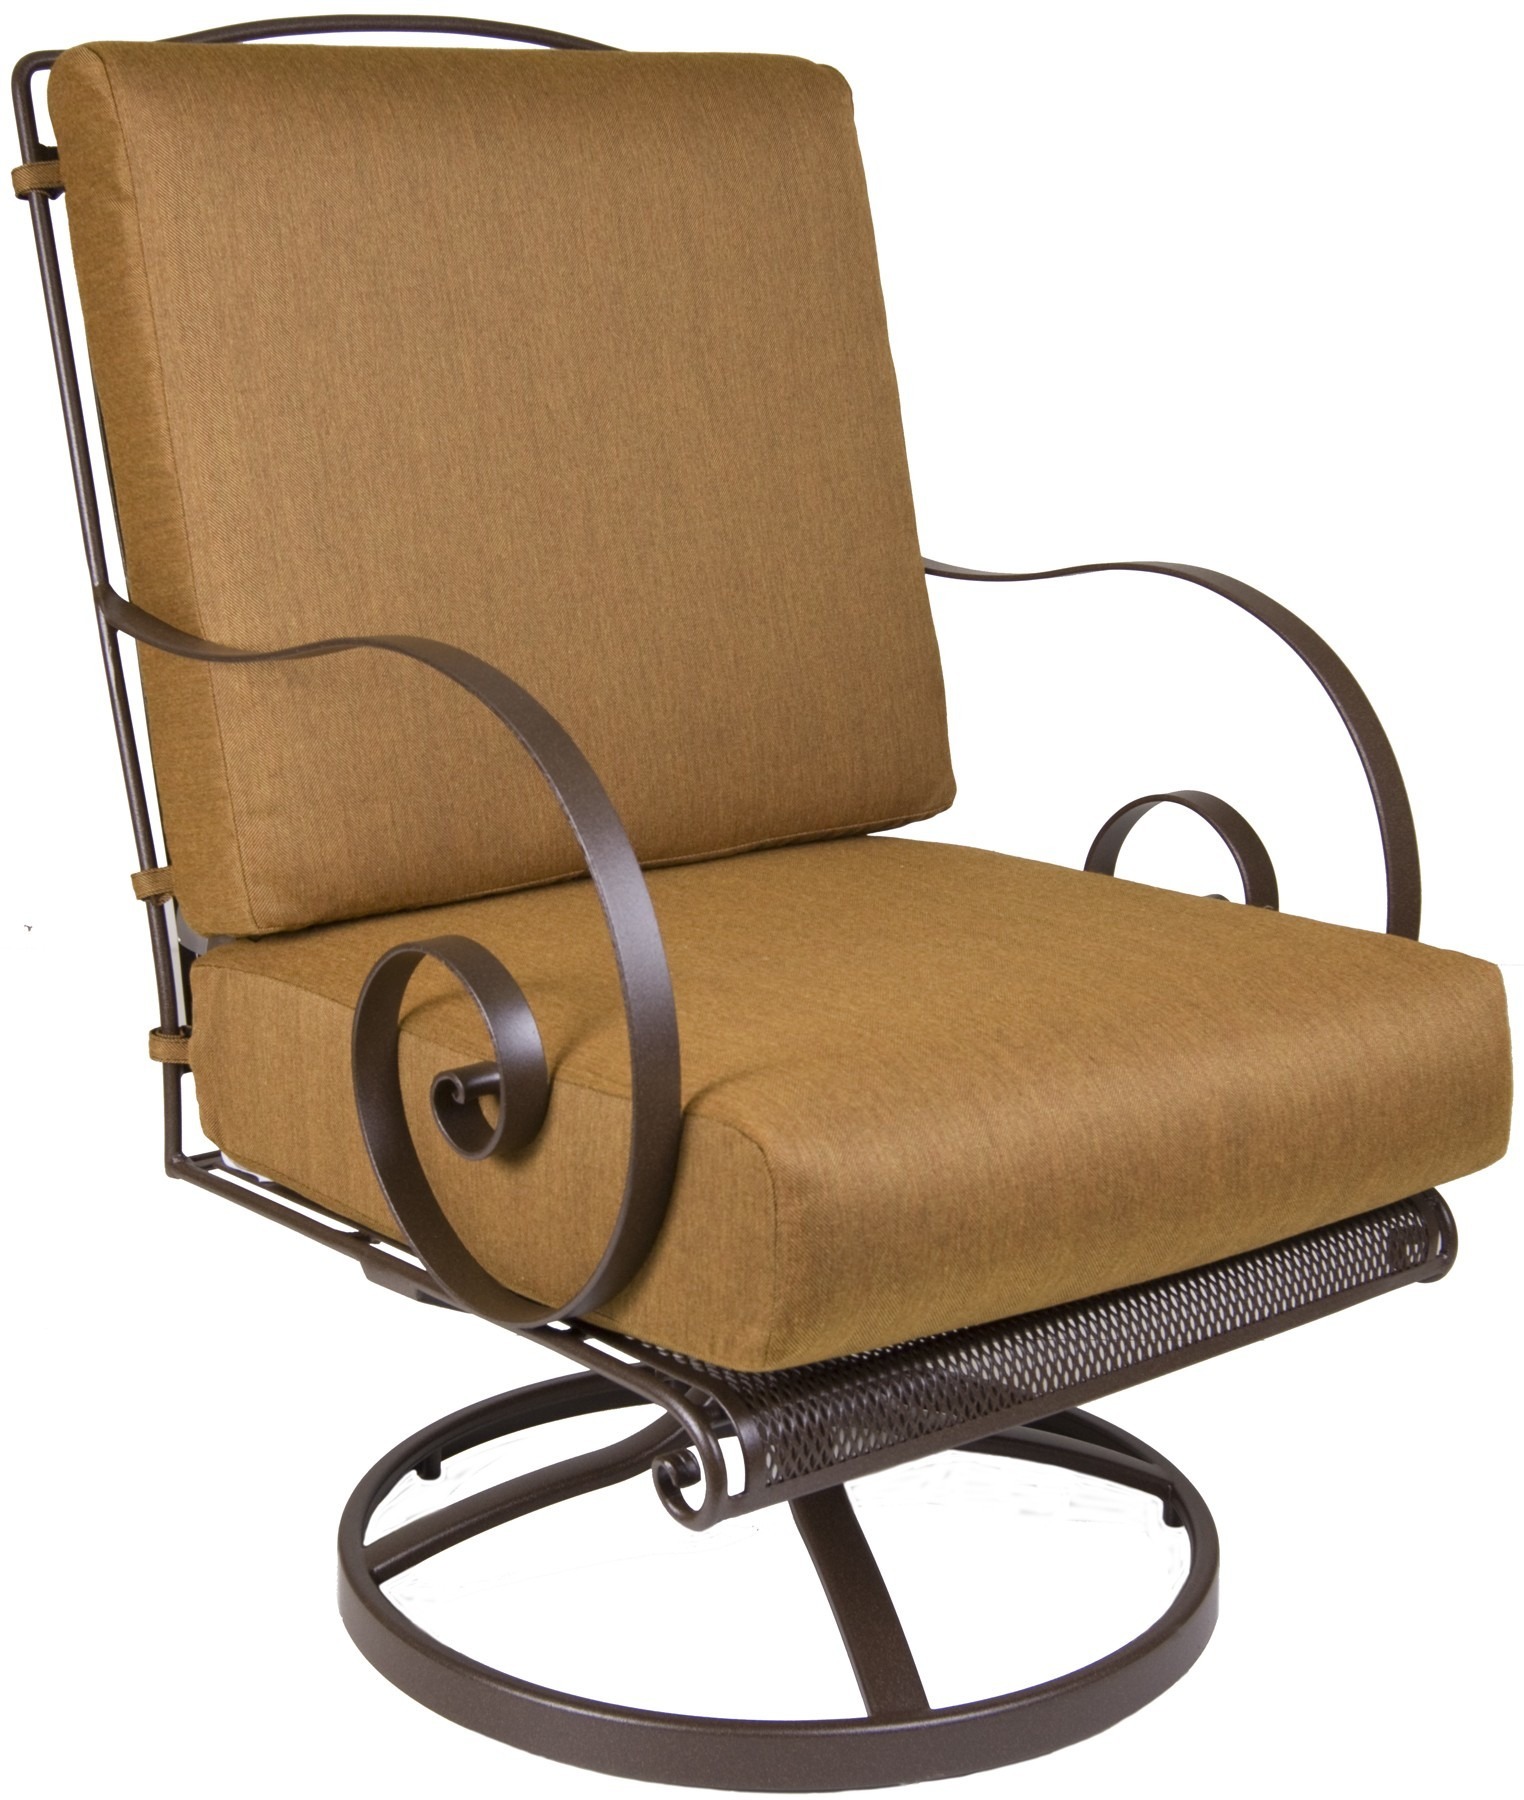 swivel lounge chairs clear vinyl dining room chair covers avalon rocker hauser 39s patio